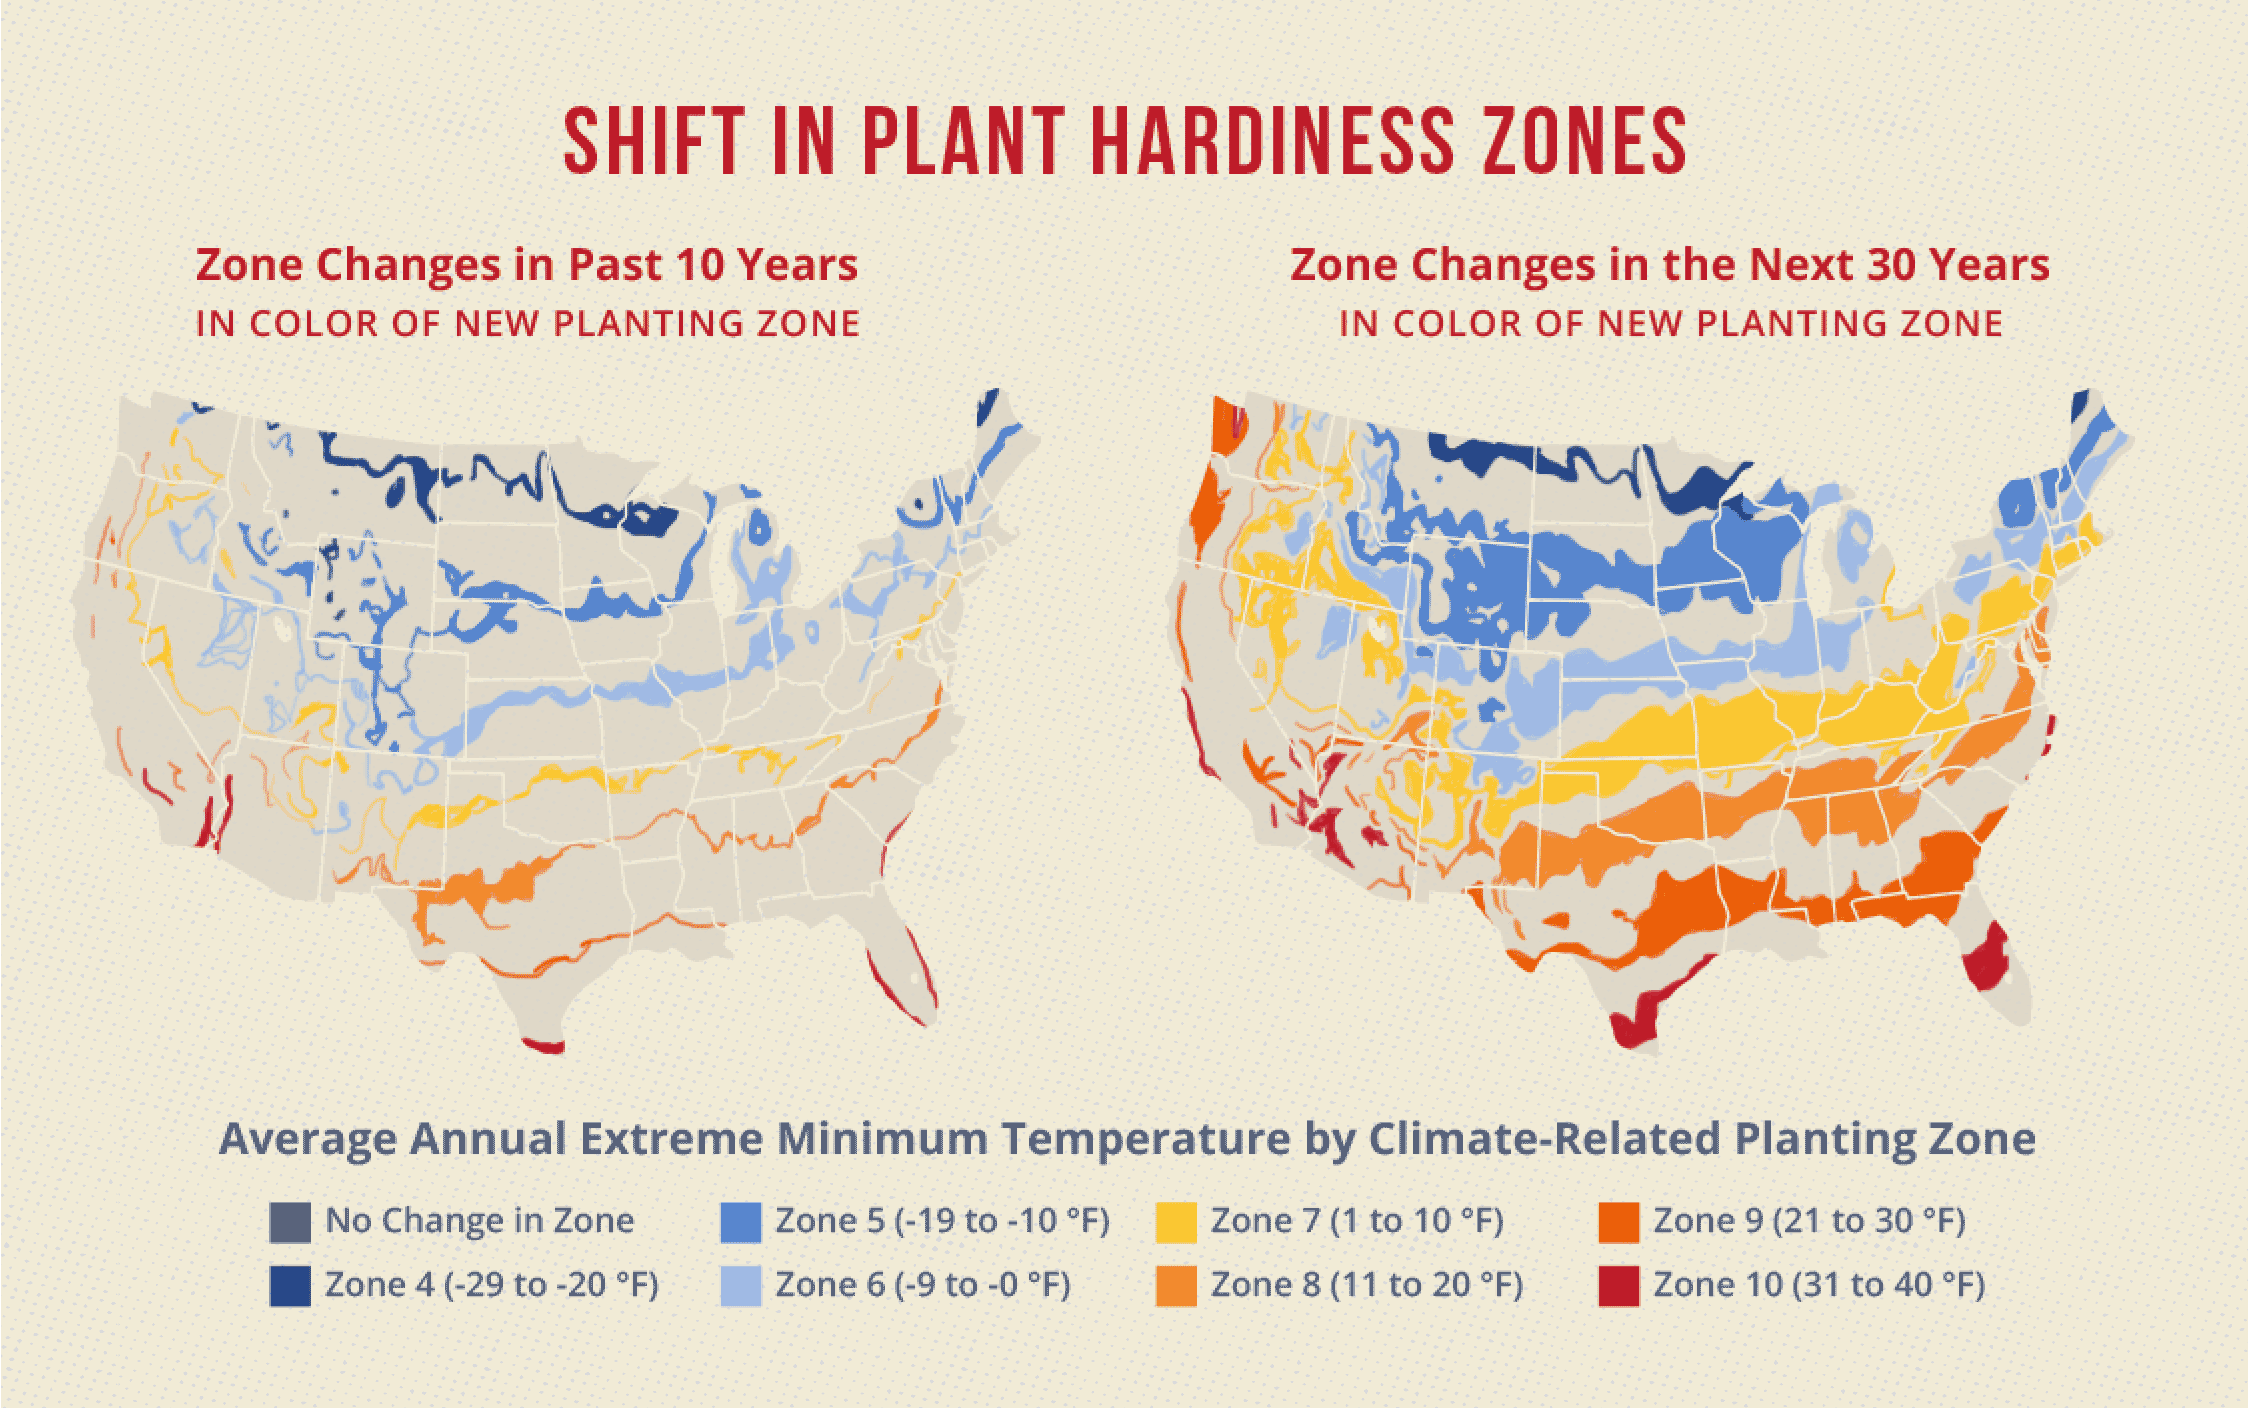 Shift in plant hardiness zones